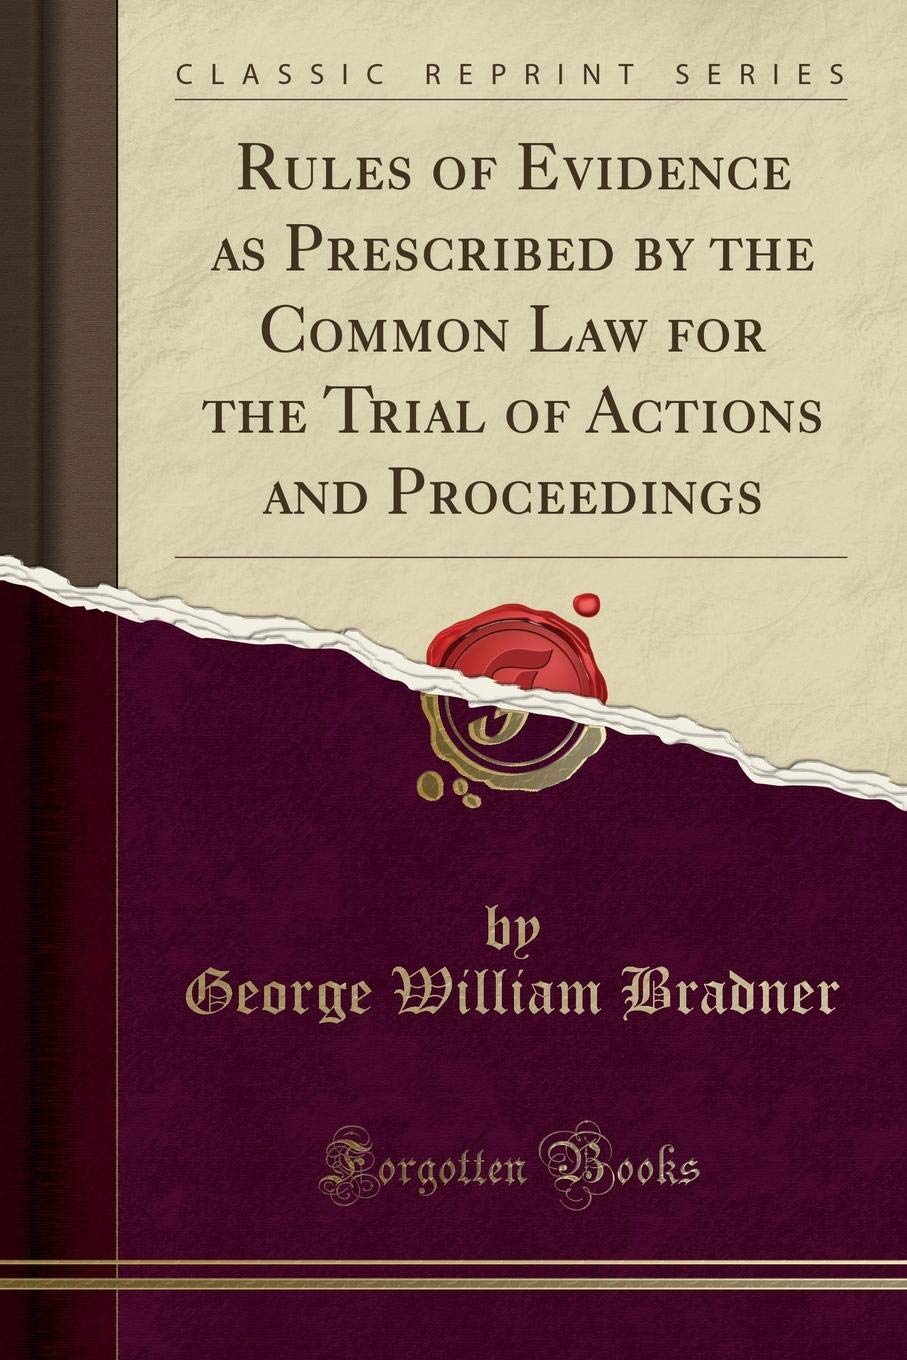 Read Online Rules of Evidence as Prescribed by the Common Law for the Trial of Actions and Proceedings (Classic Reprint) ebook